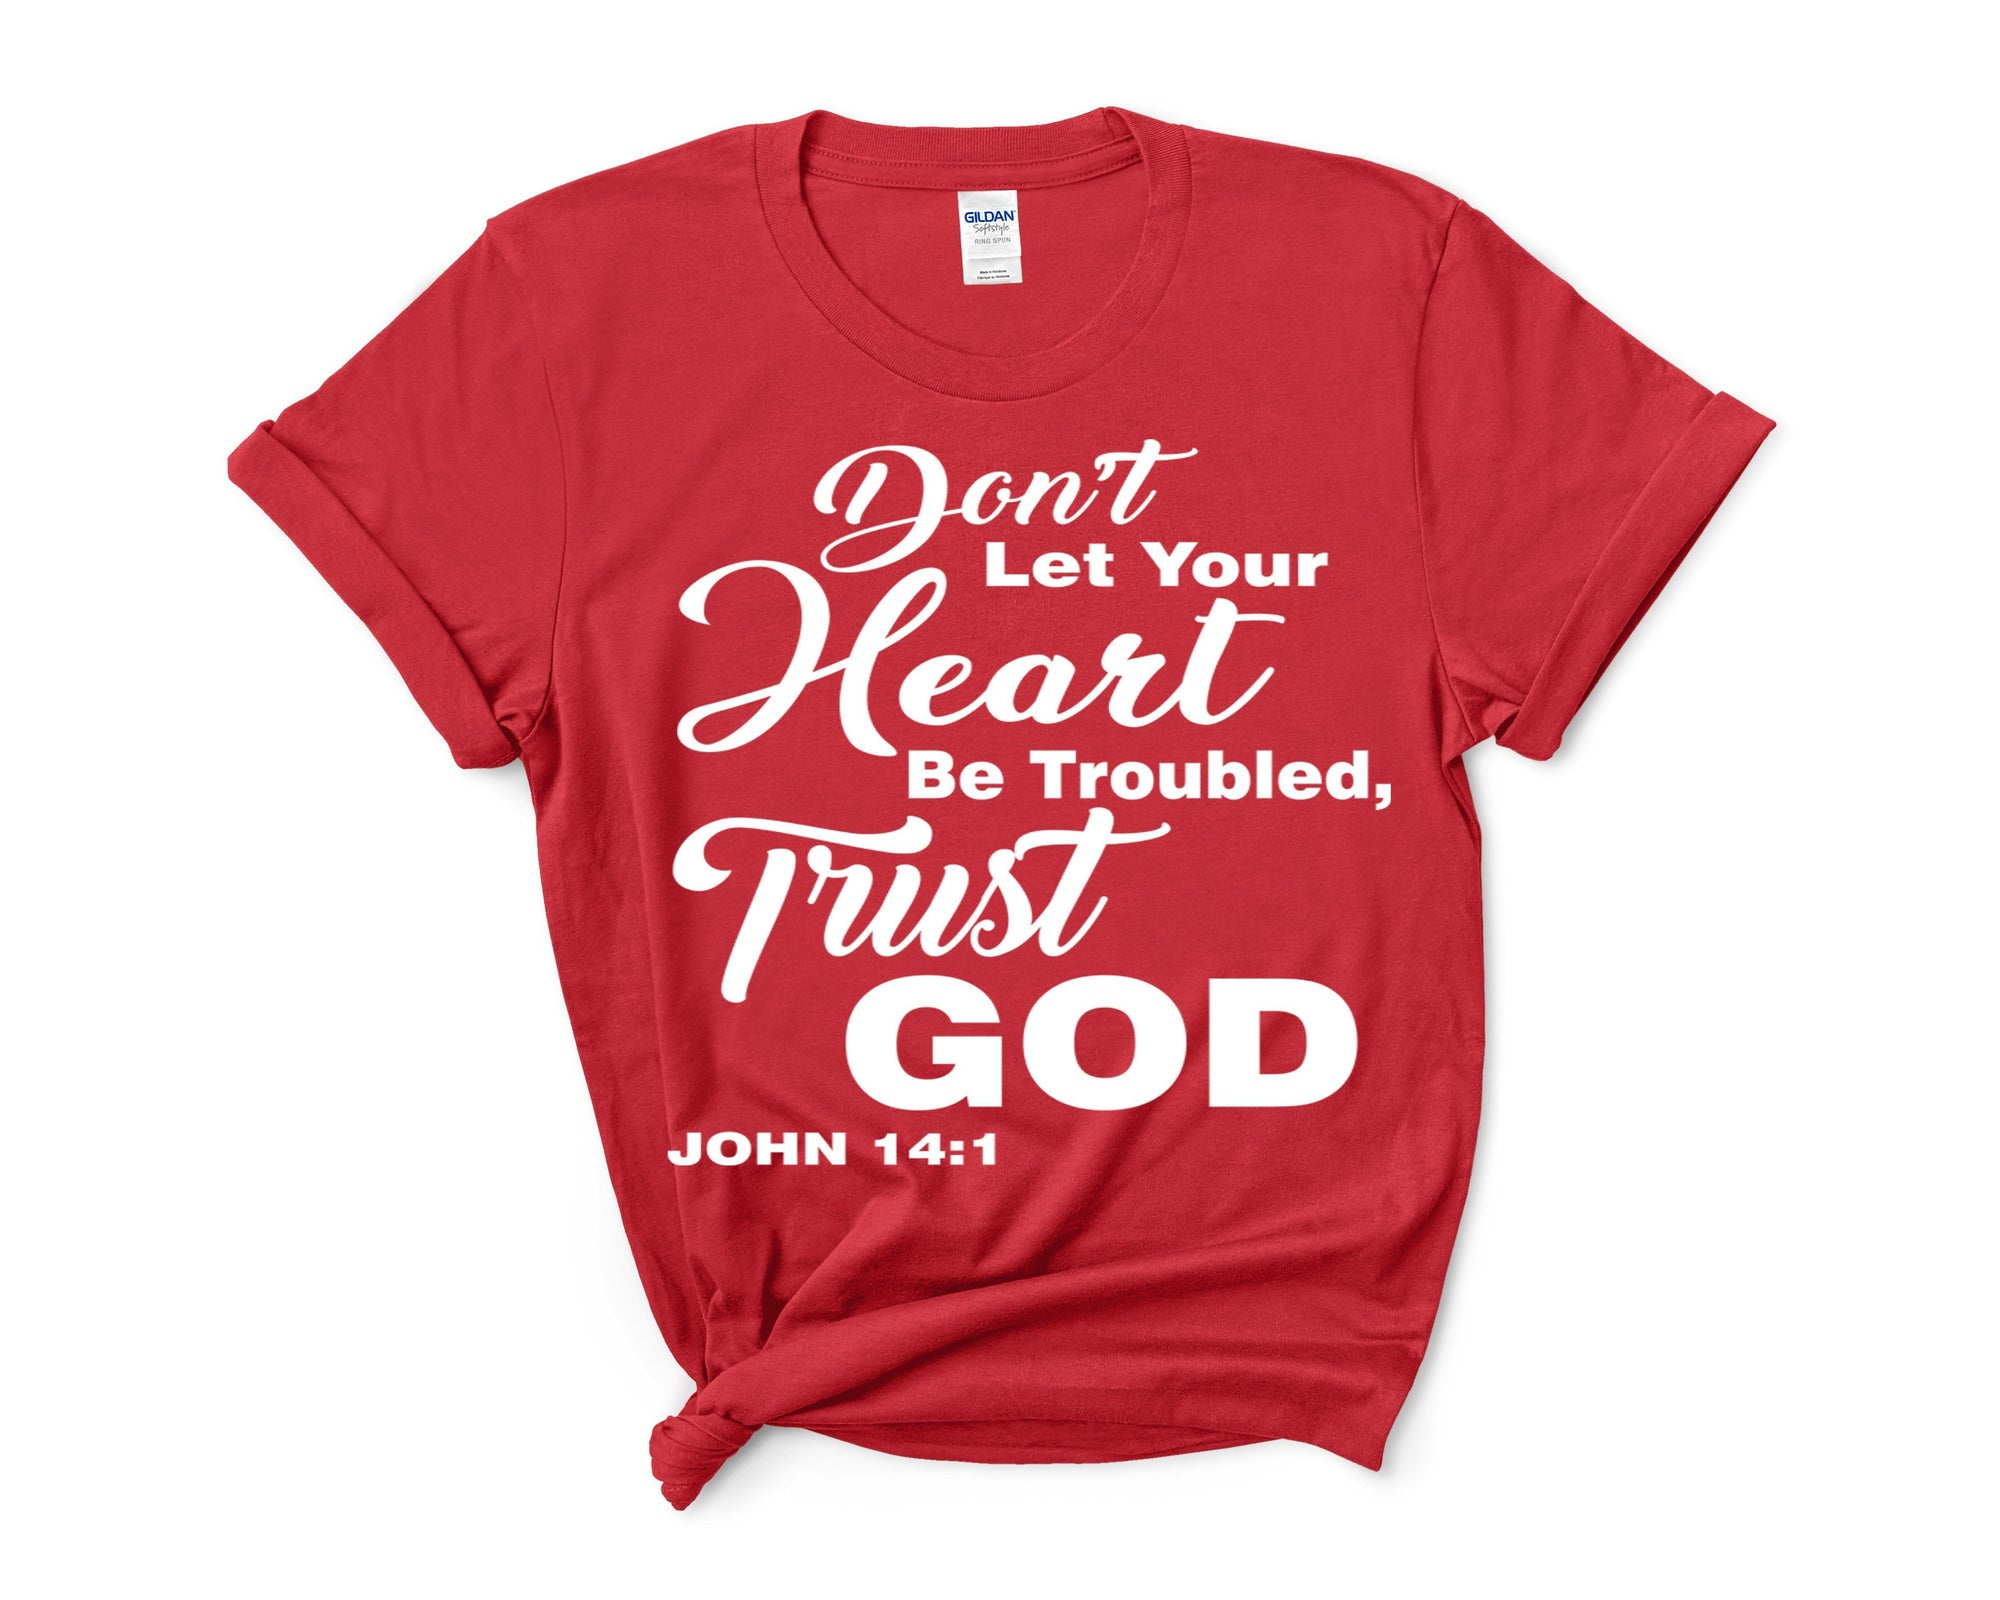 """Don't Let Your Heart Be Troubled, Trust God-RED"" T-shirt"